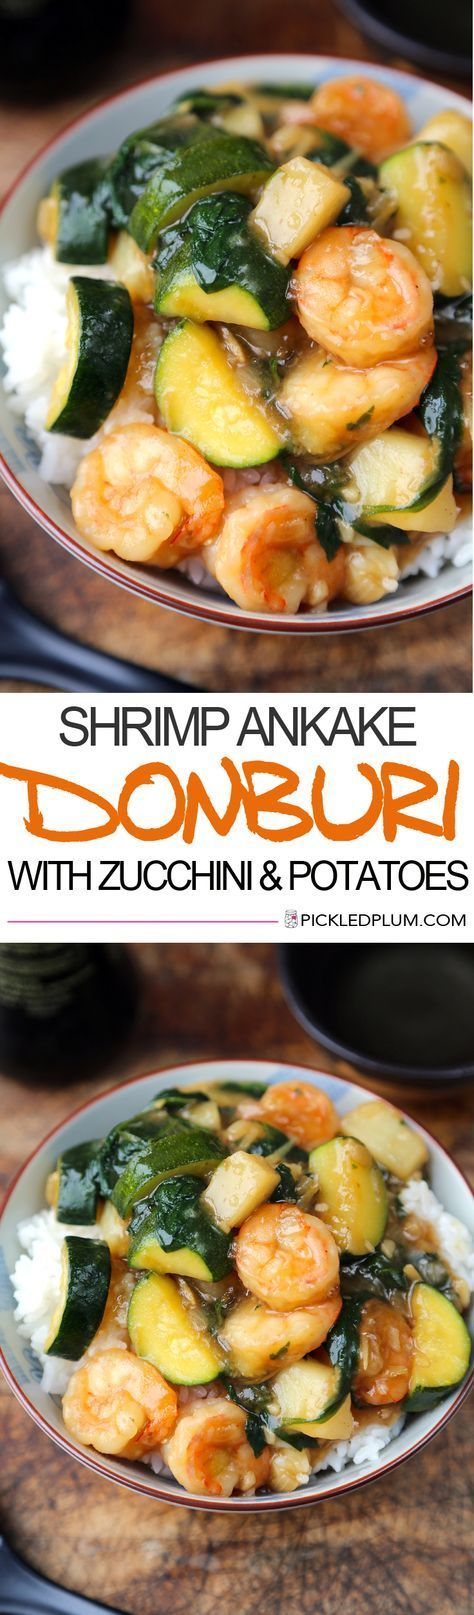 Shrimp Ankake Donburi (with zucchini and potatoes) Japanese Recipe -